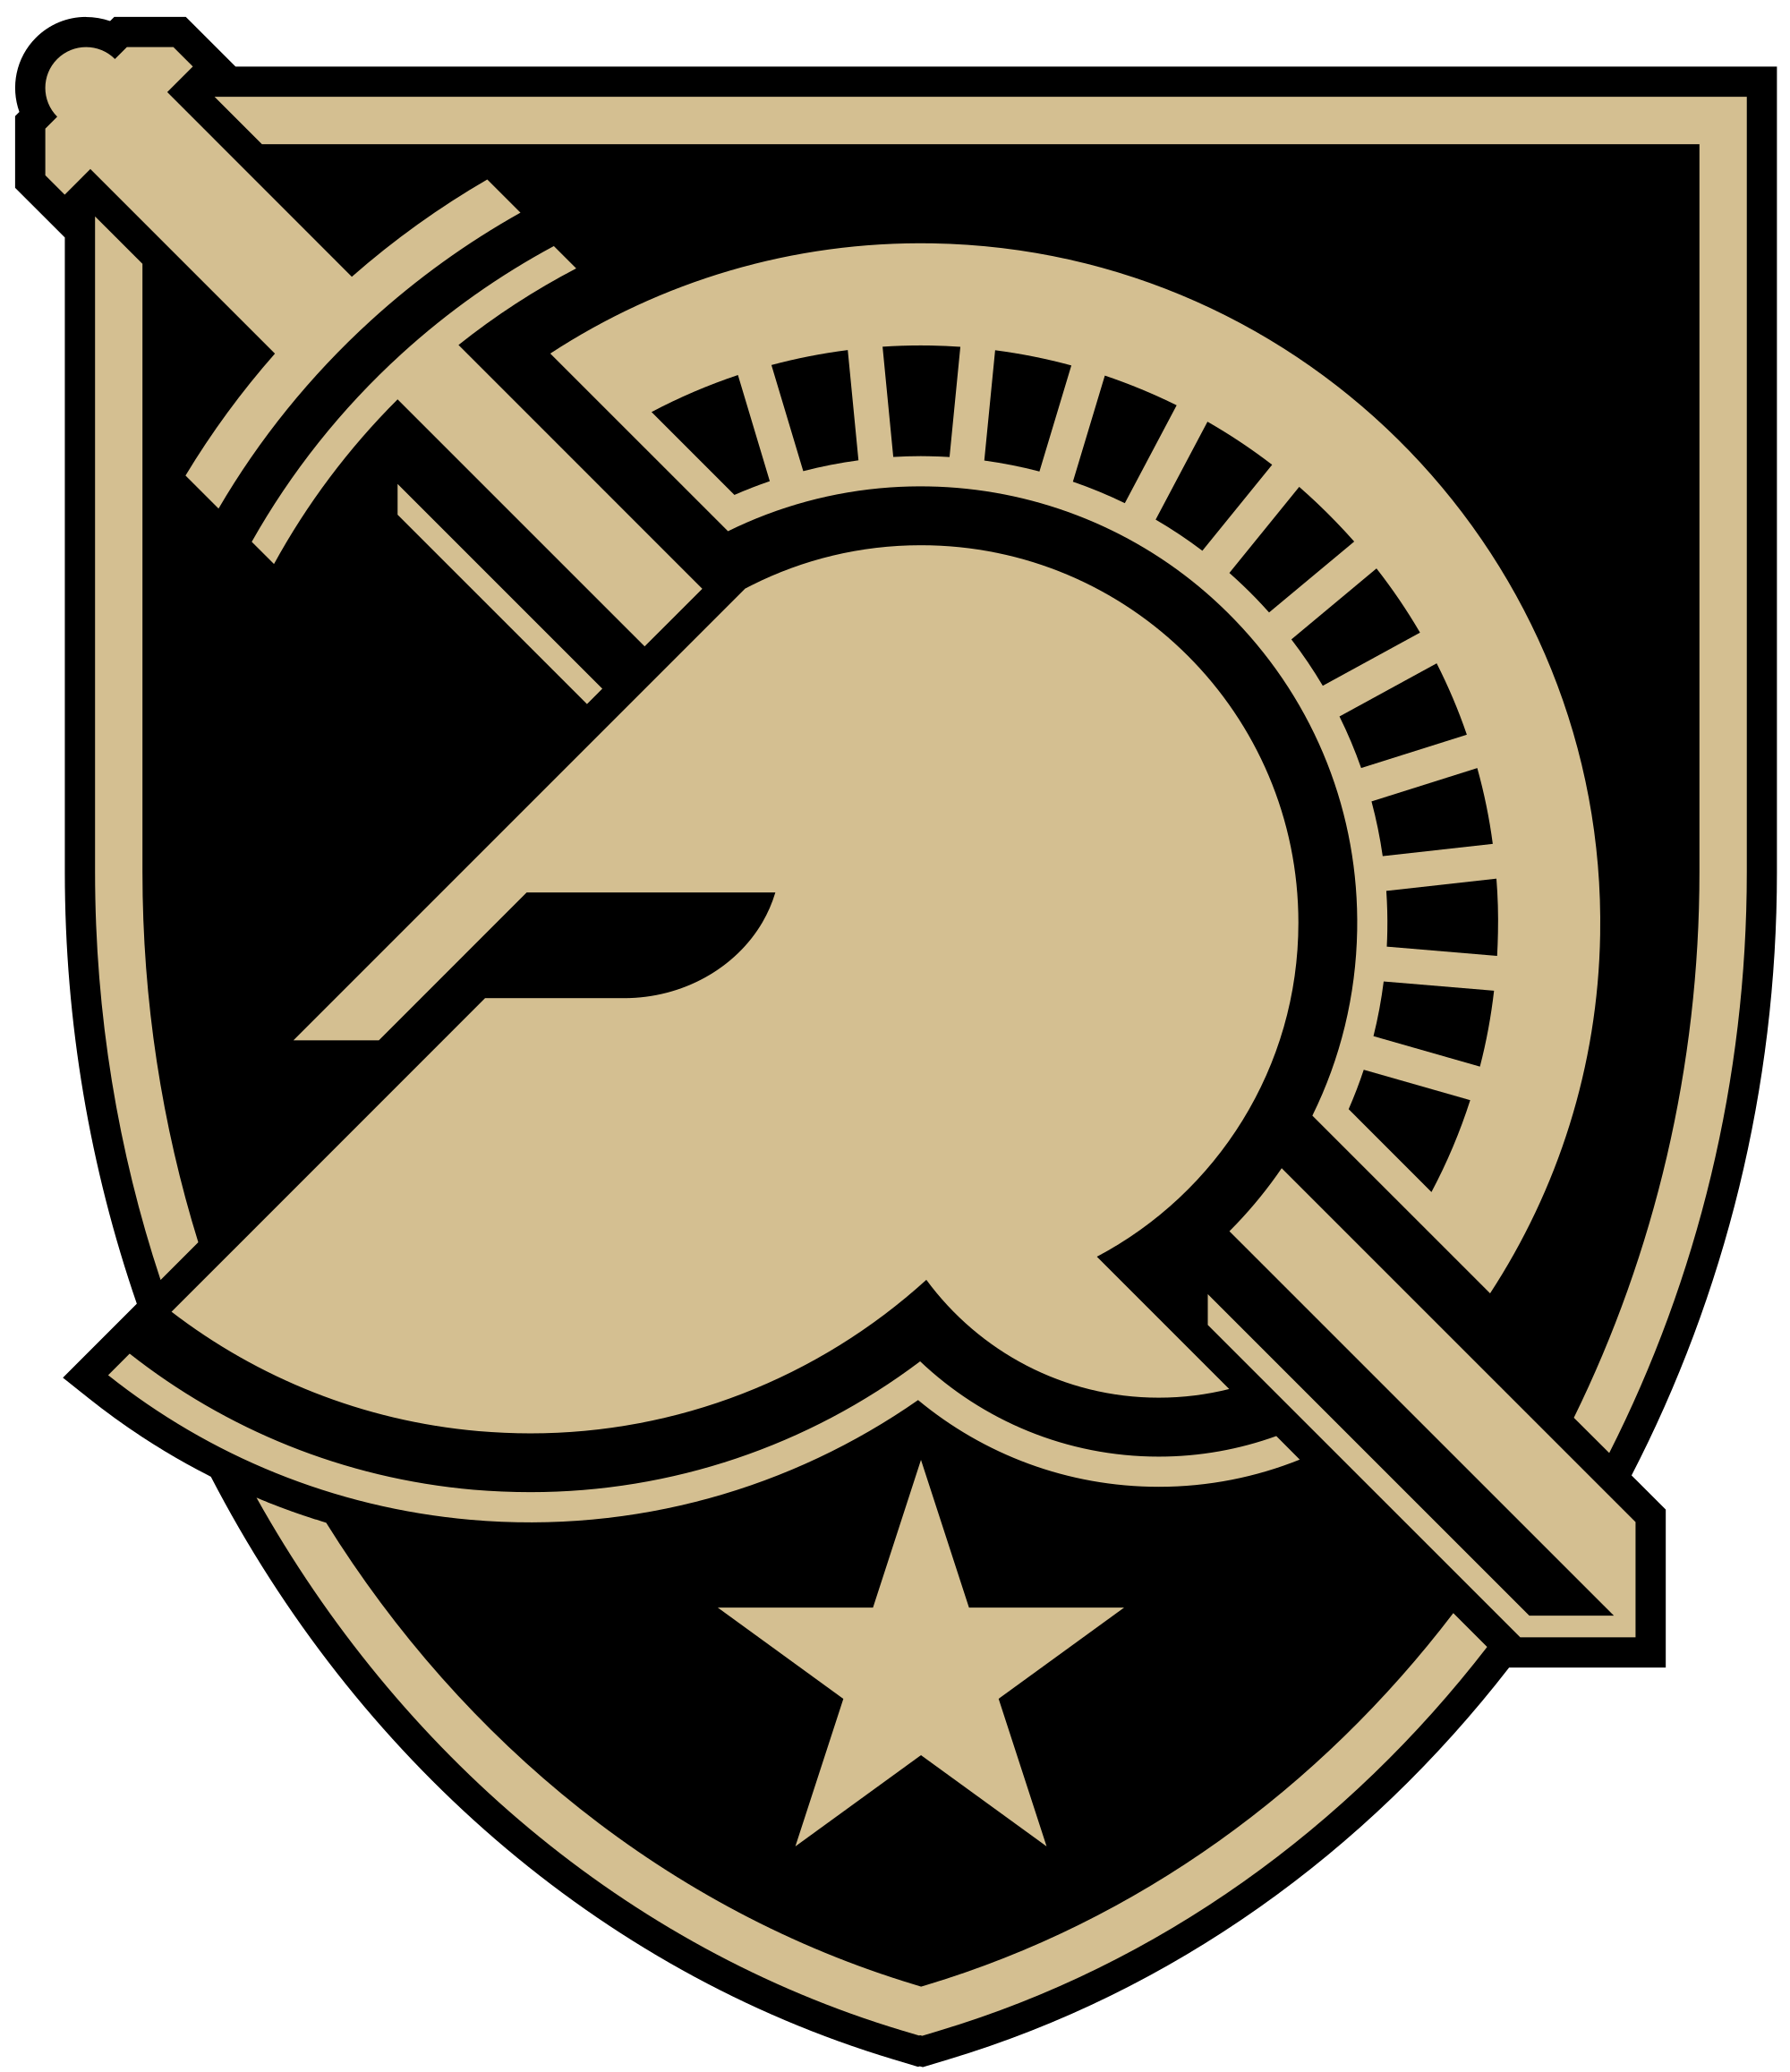 Army logo png. File west point svg